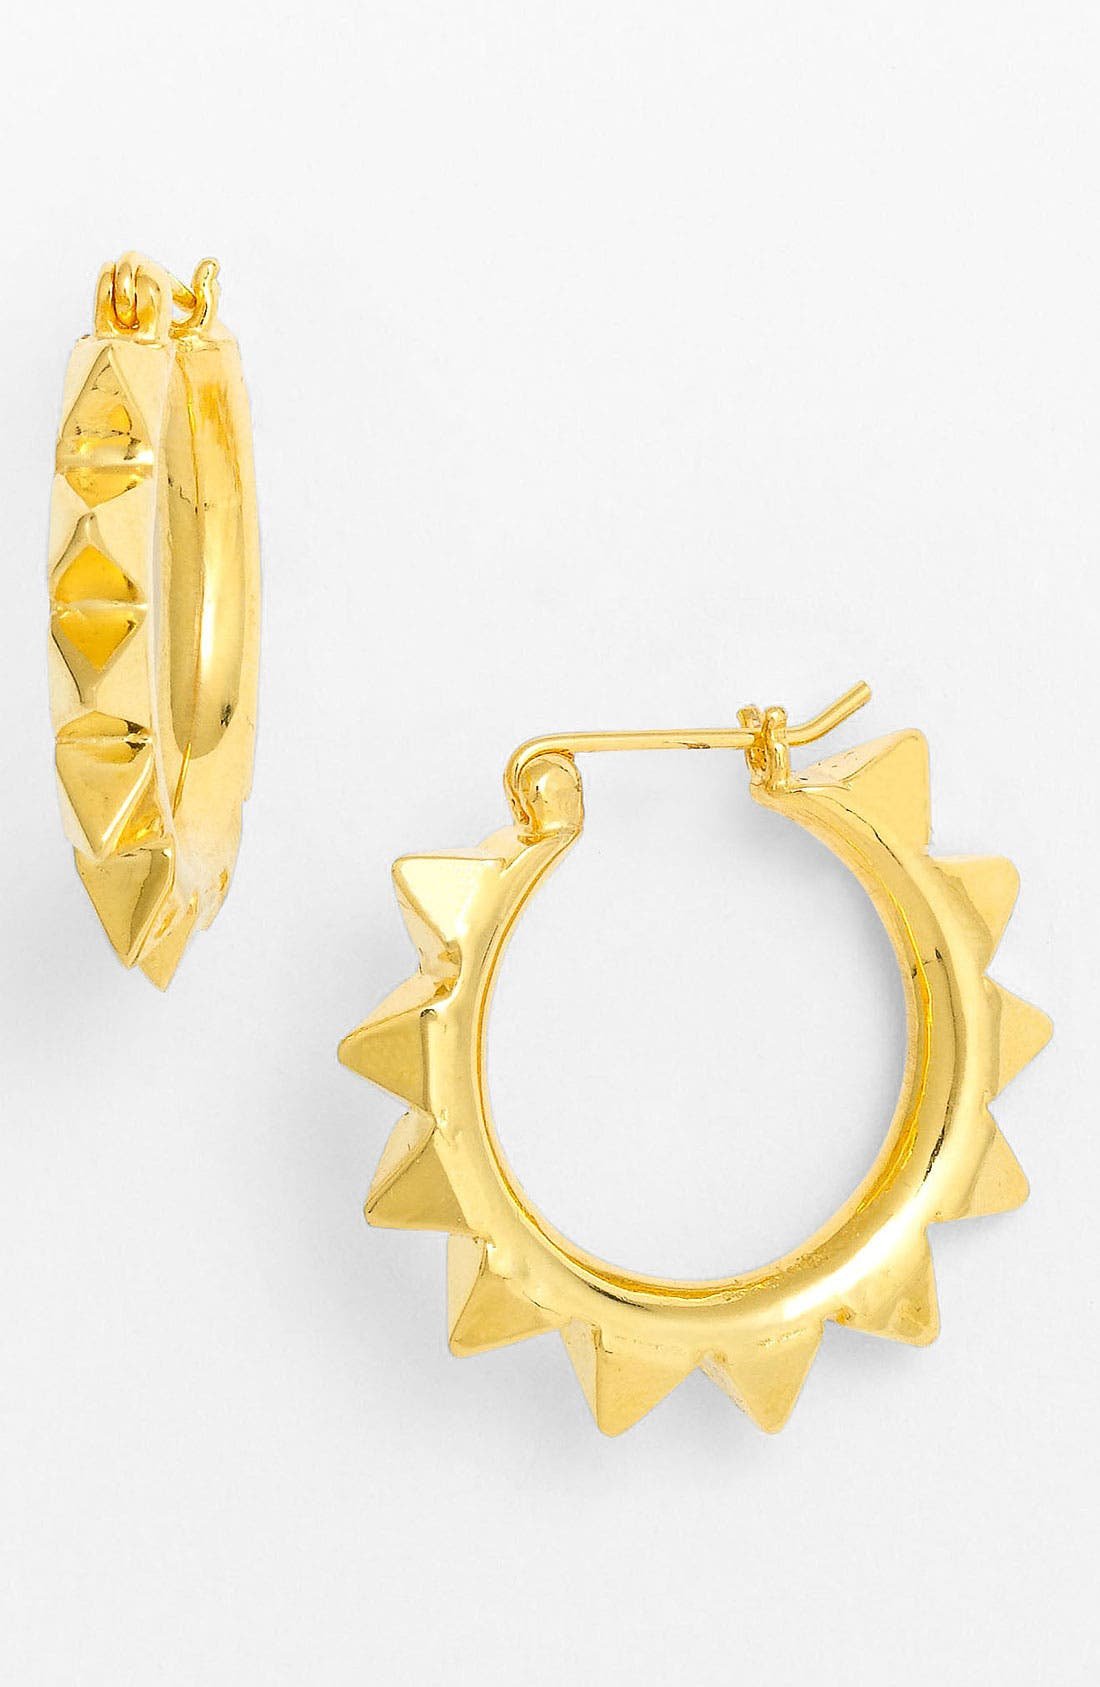 Main Image - Tom Binns 'Protopunk - Small' Stud Hoop Earrings